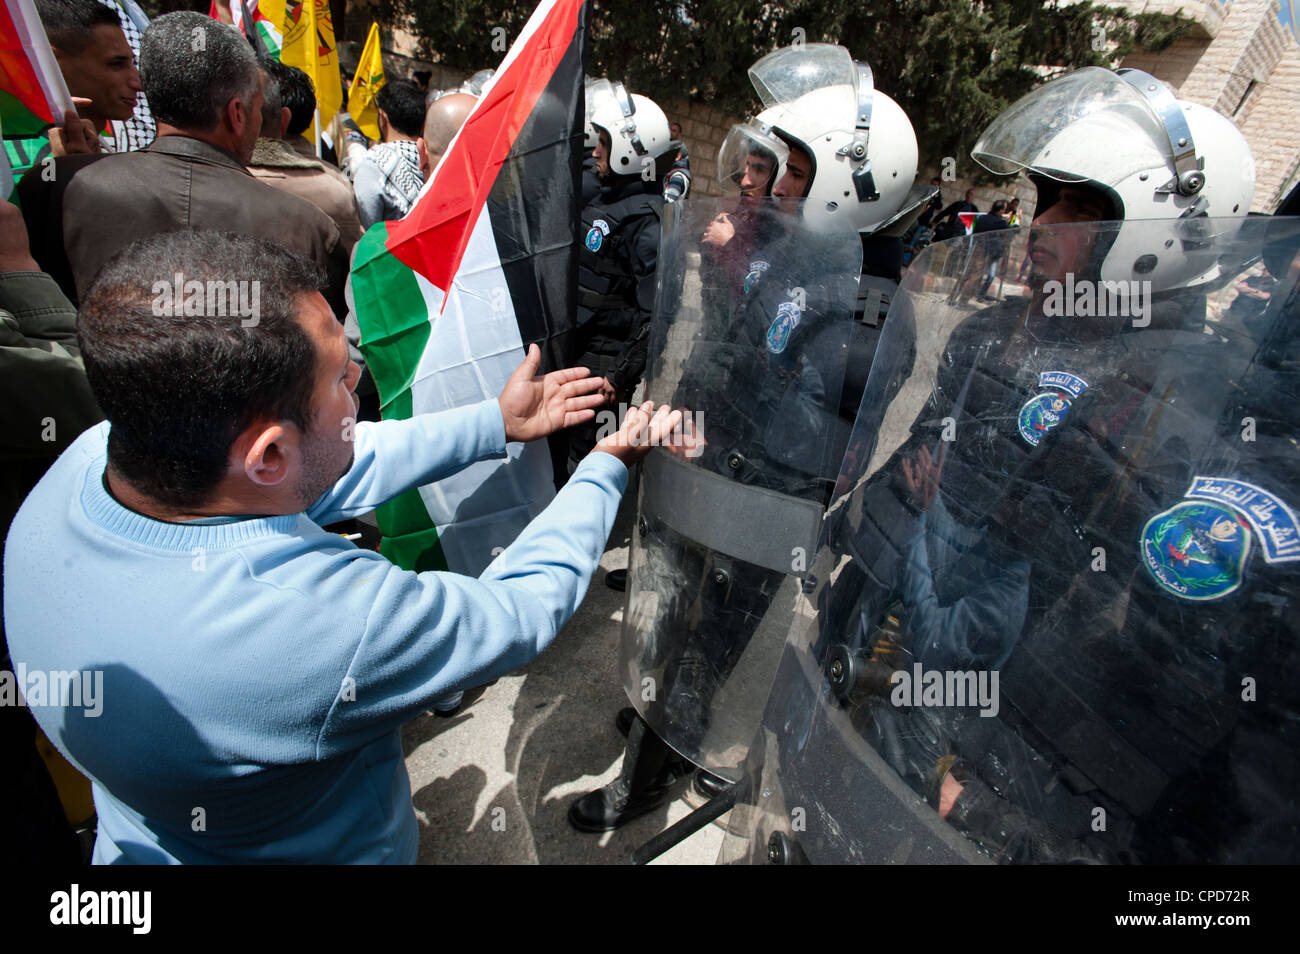 Palestinian protesters confront riot police of the Palestinian Authority during Land Day protests. - Stock Image